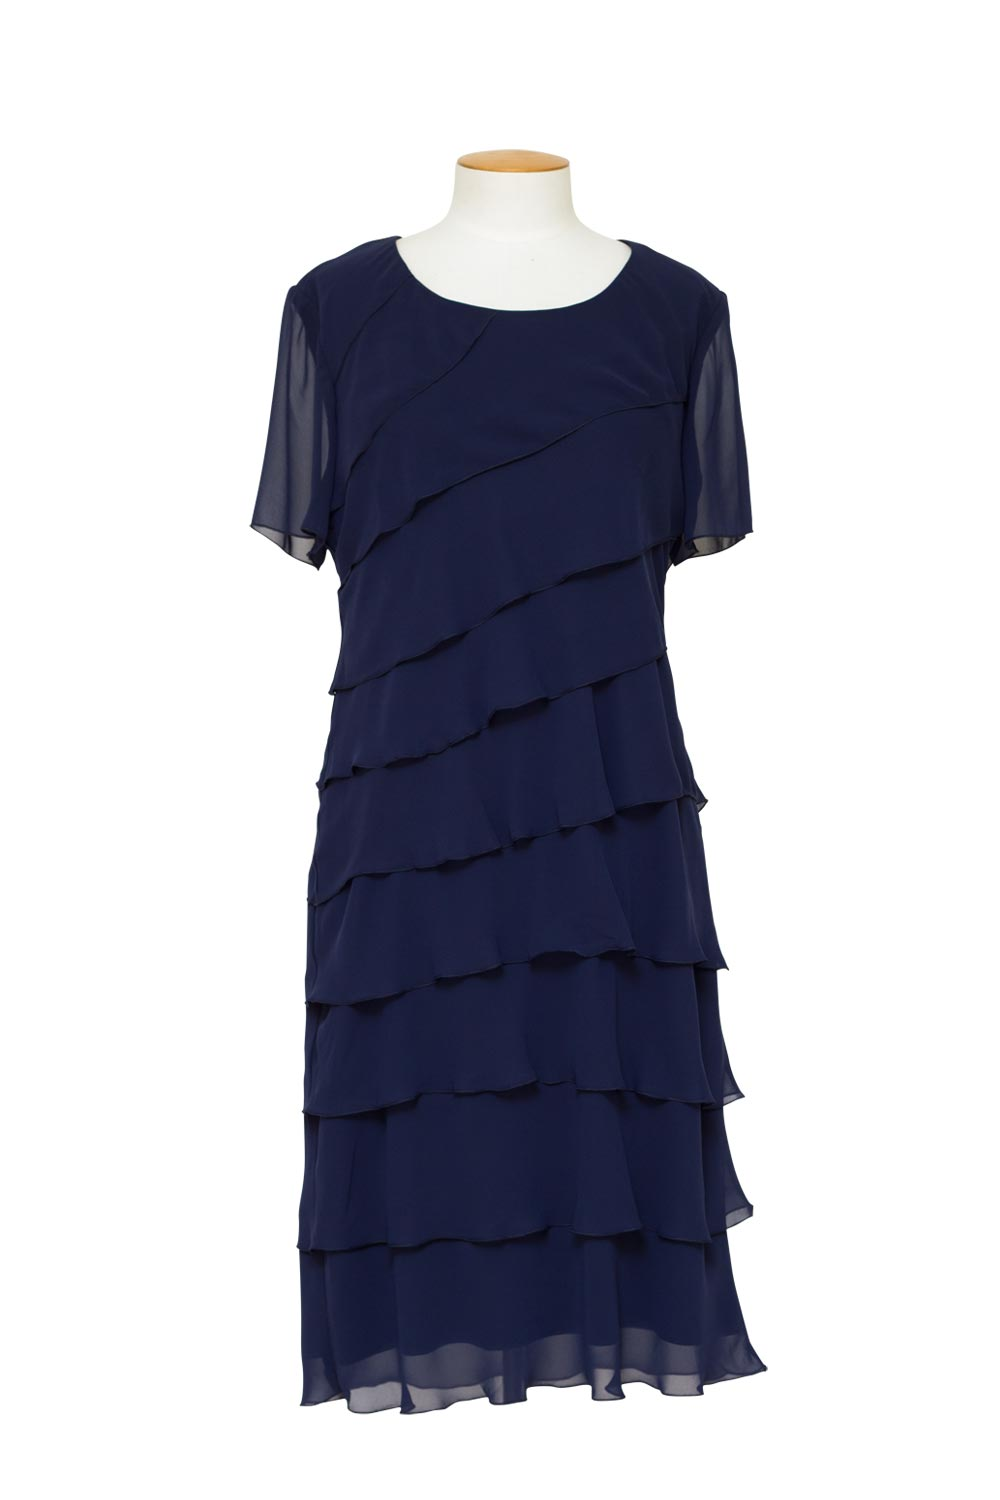 Layla Jones / Jesse Harper (LJ0002/JH0072) - Short Sleeve Chiffon Layer Dress